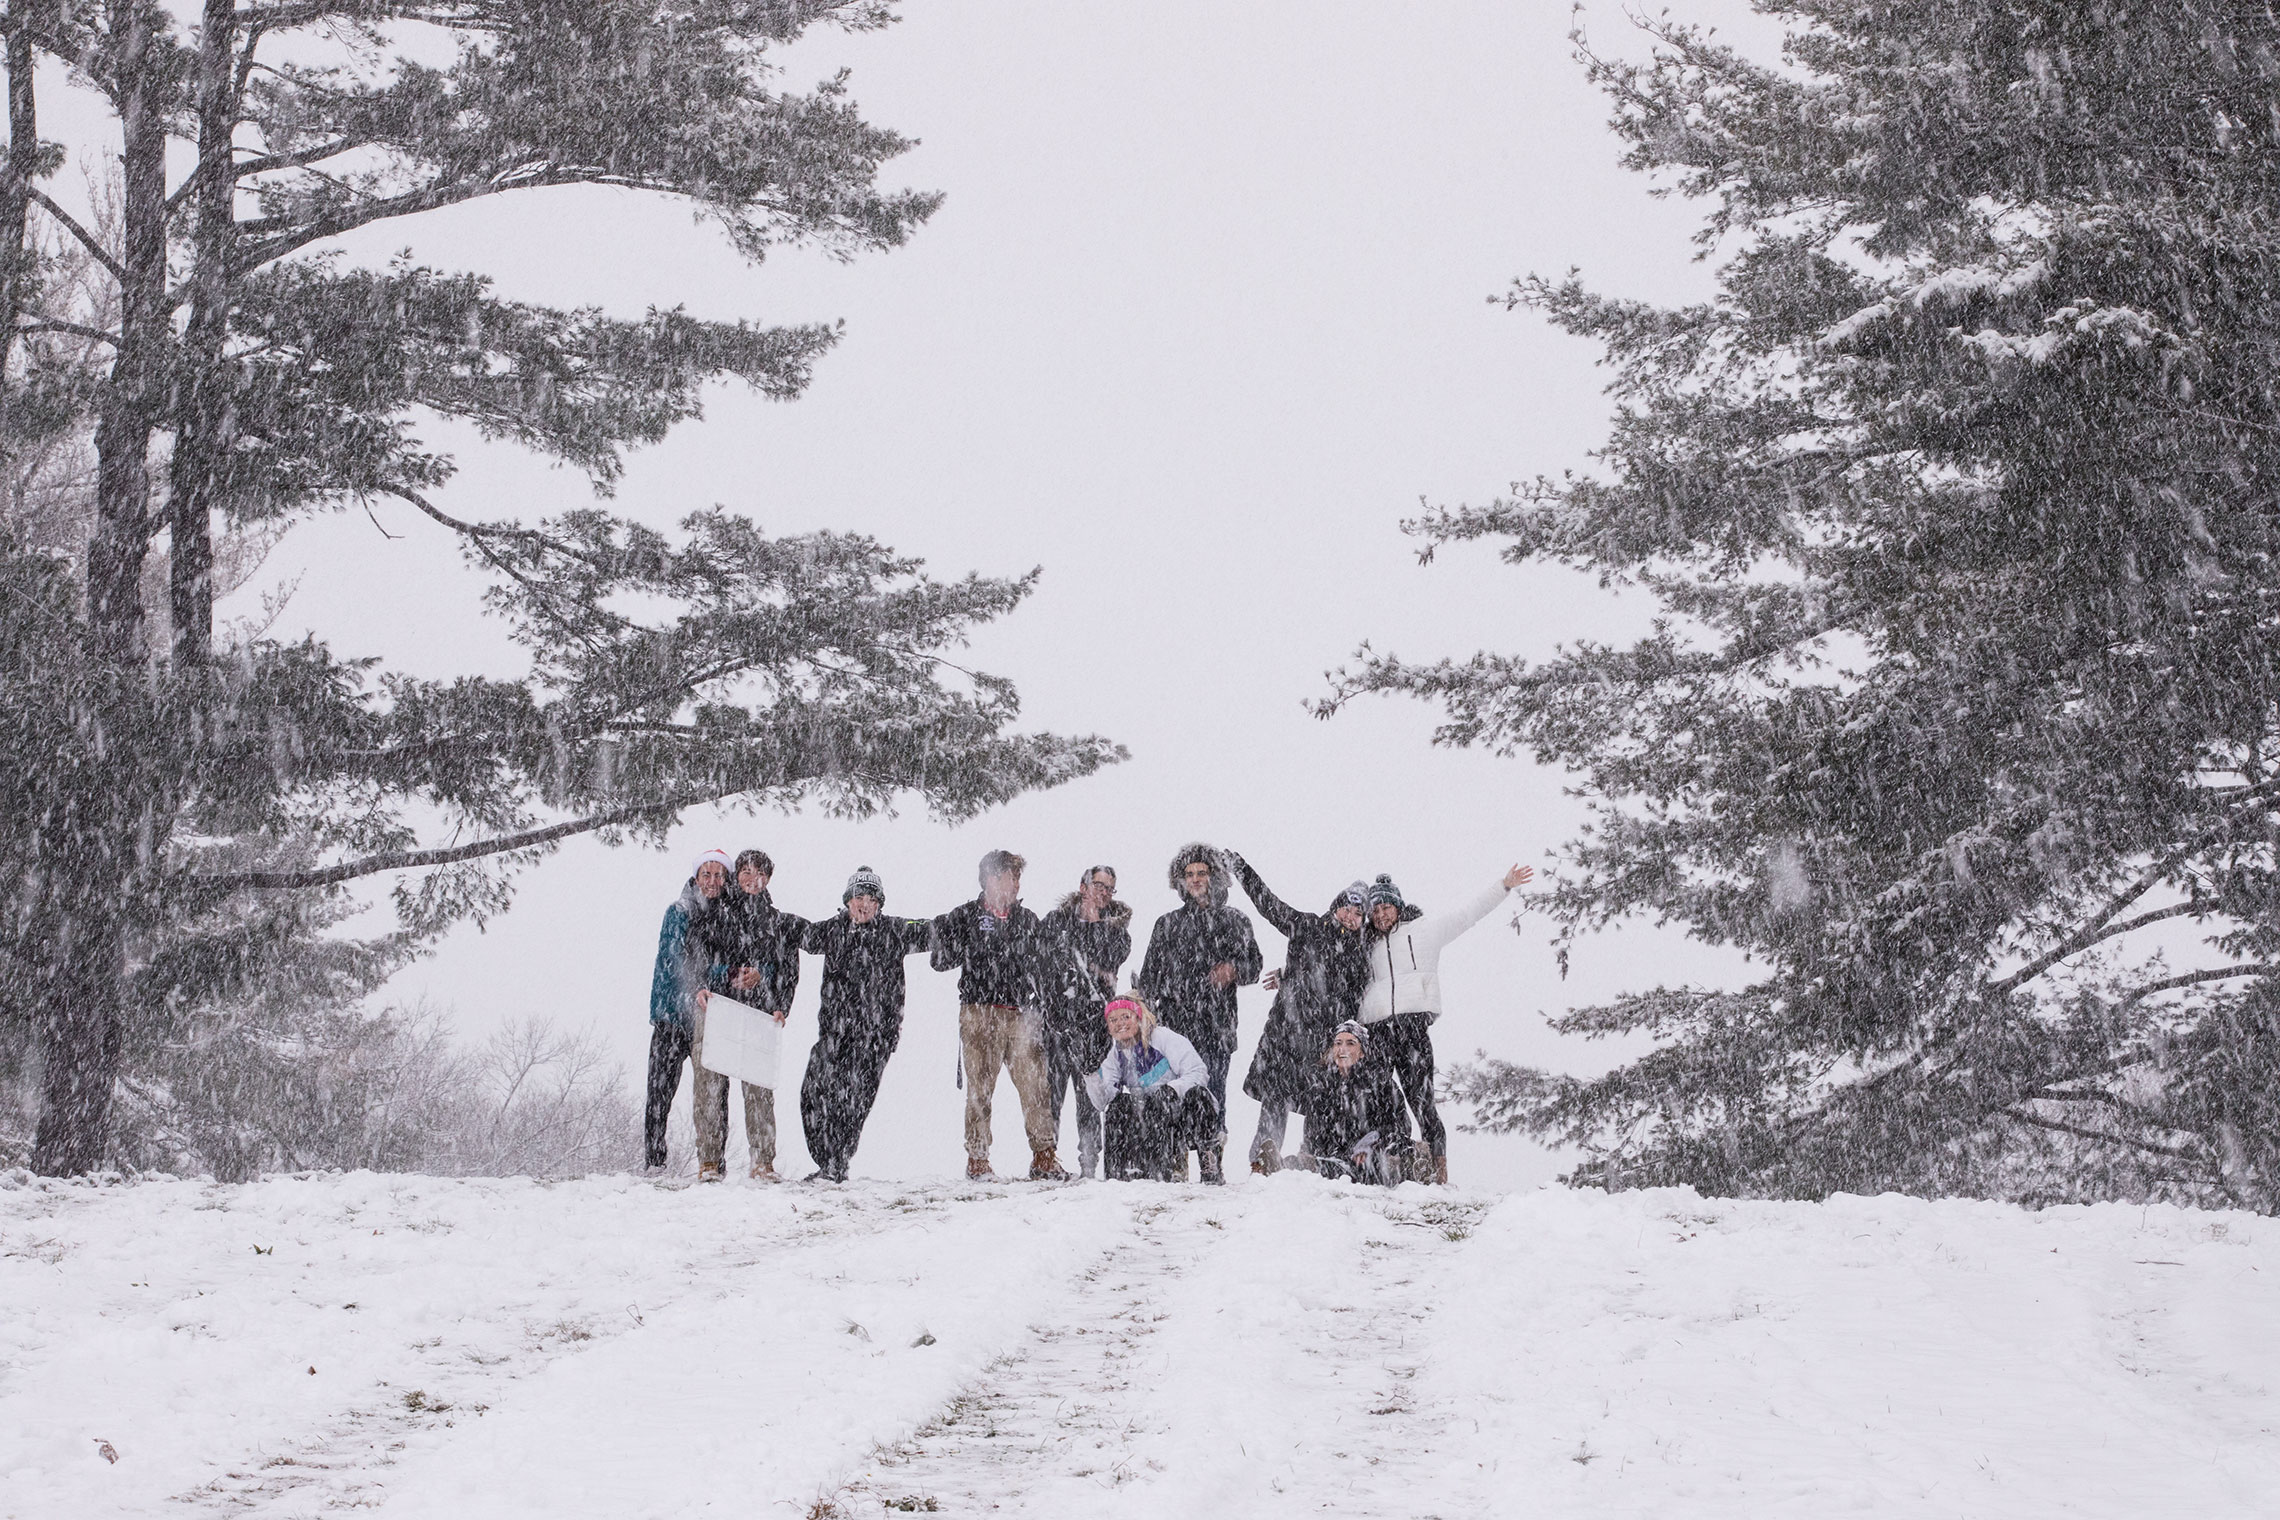 Students sledding on the Amherst College campus.